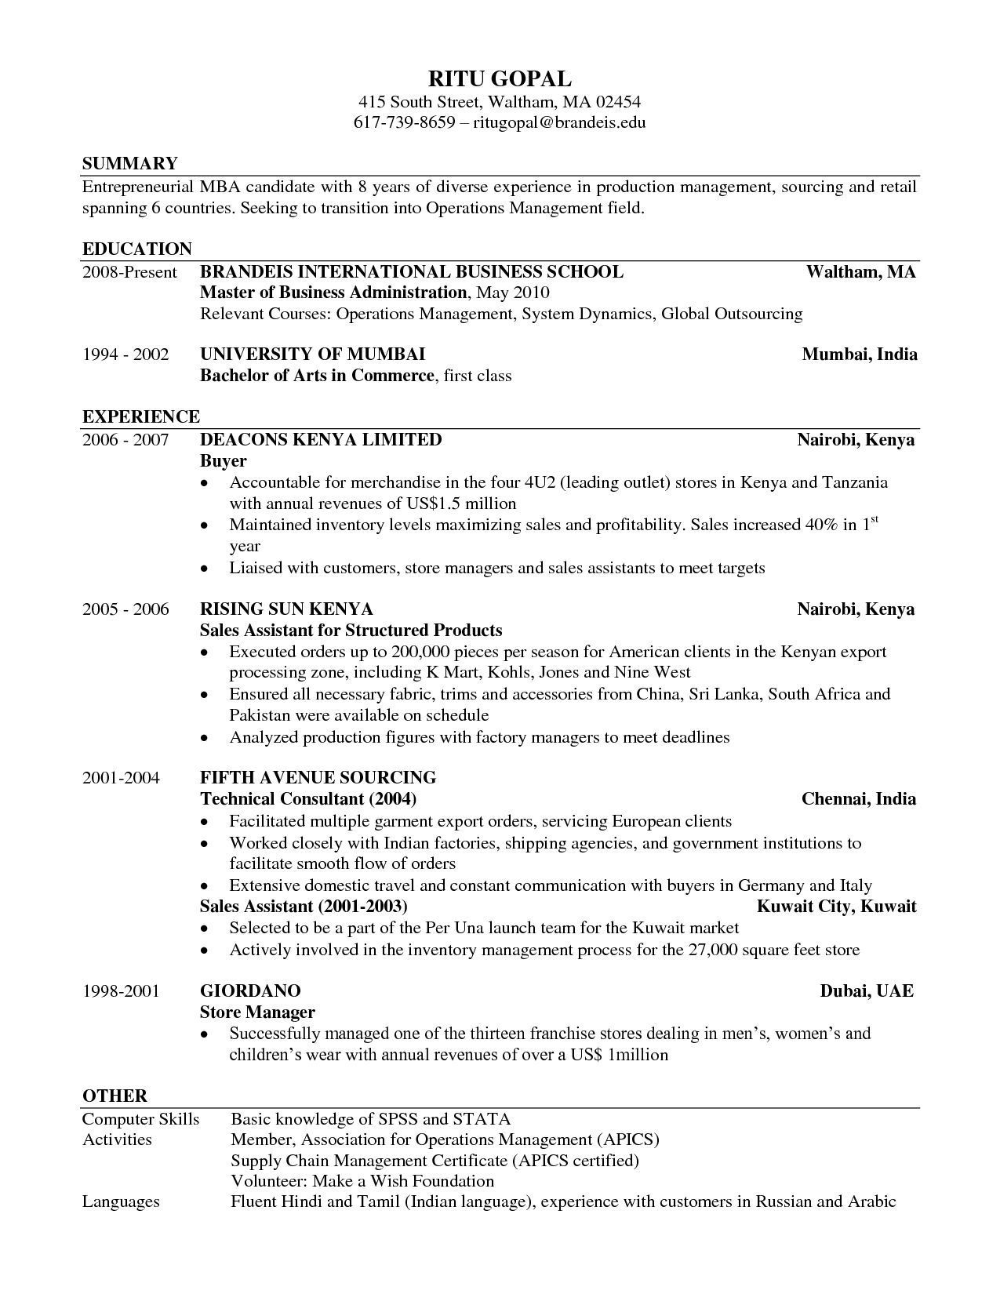 Resume Templates Harvard 6 Templates Example Templates Example Law School Personal Statement Law School Application School Application